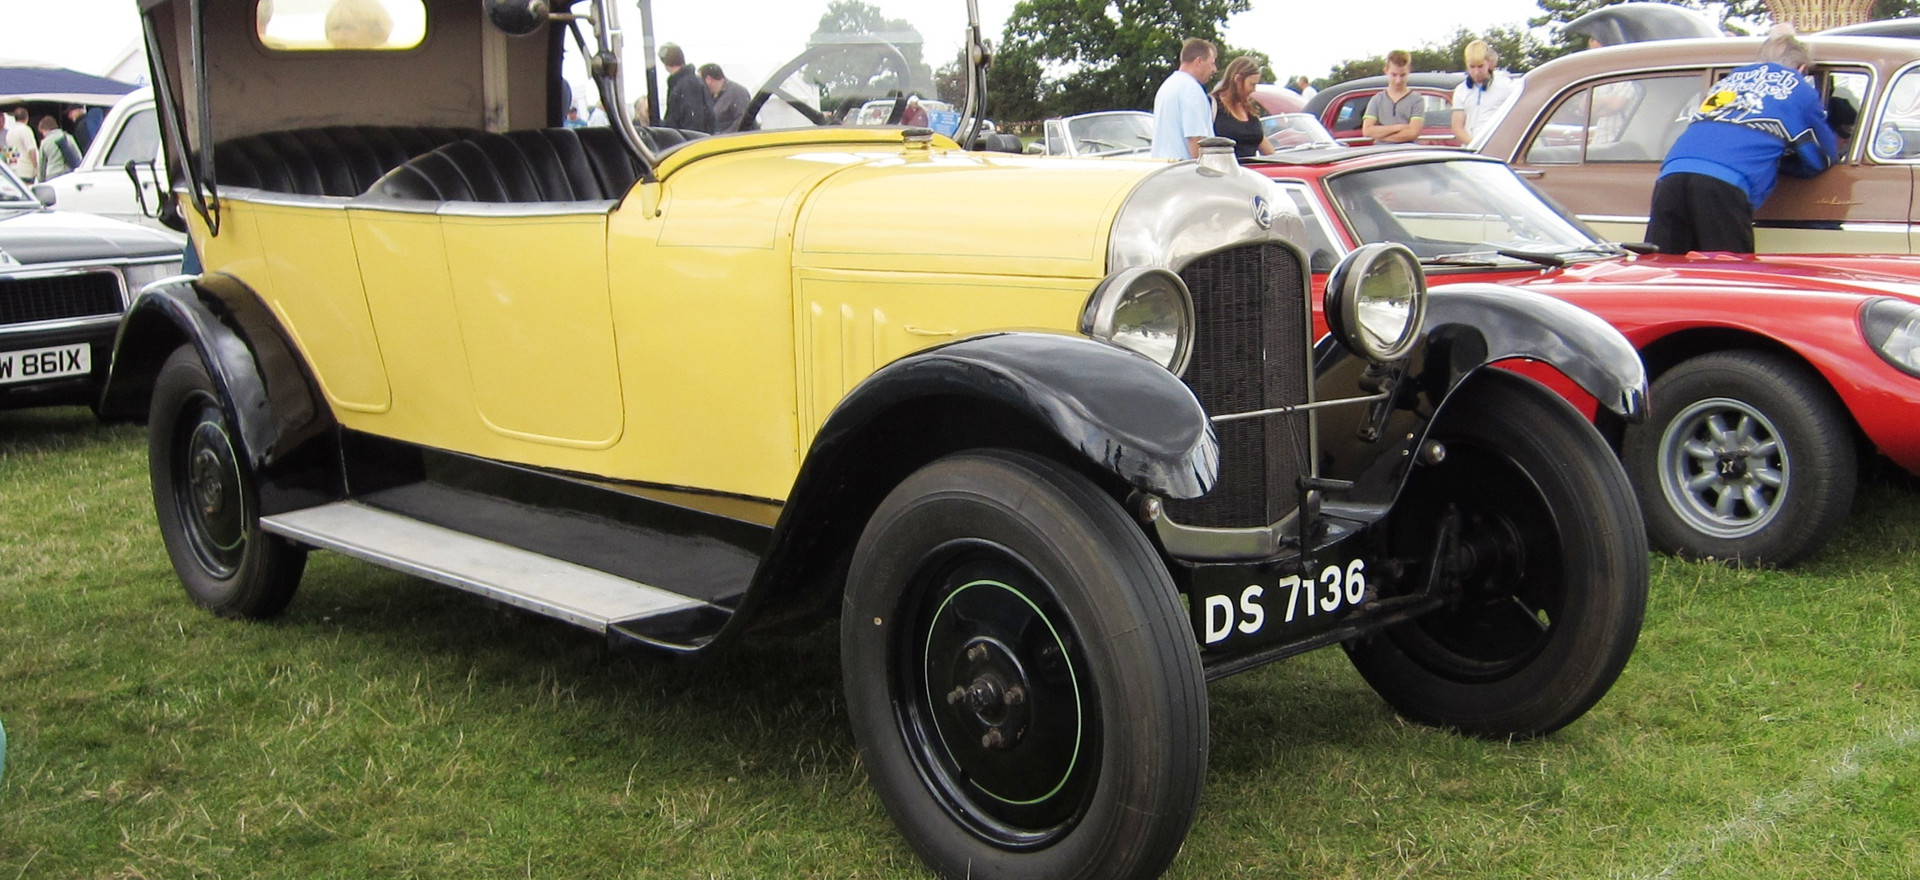 On July 12, 1921, Citroën presented its second car, the B2. A more powerful and advanced version of Type A